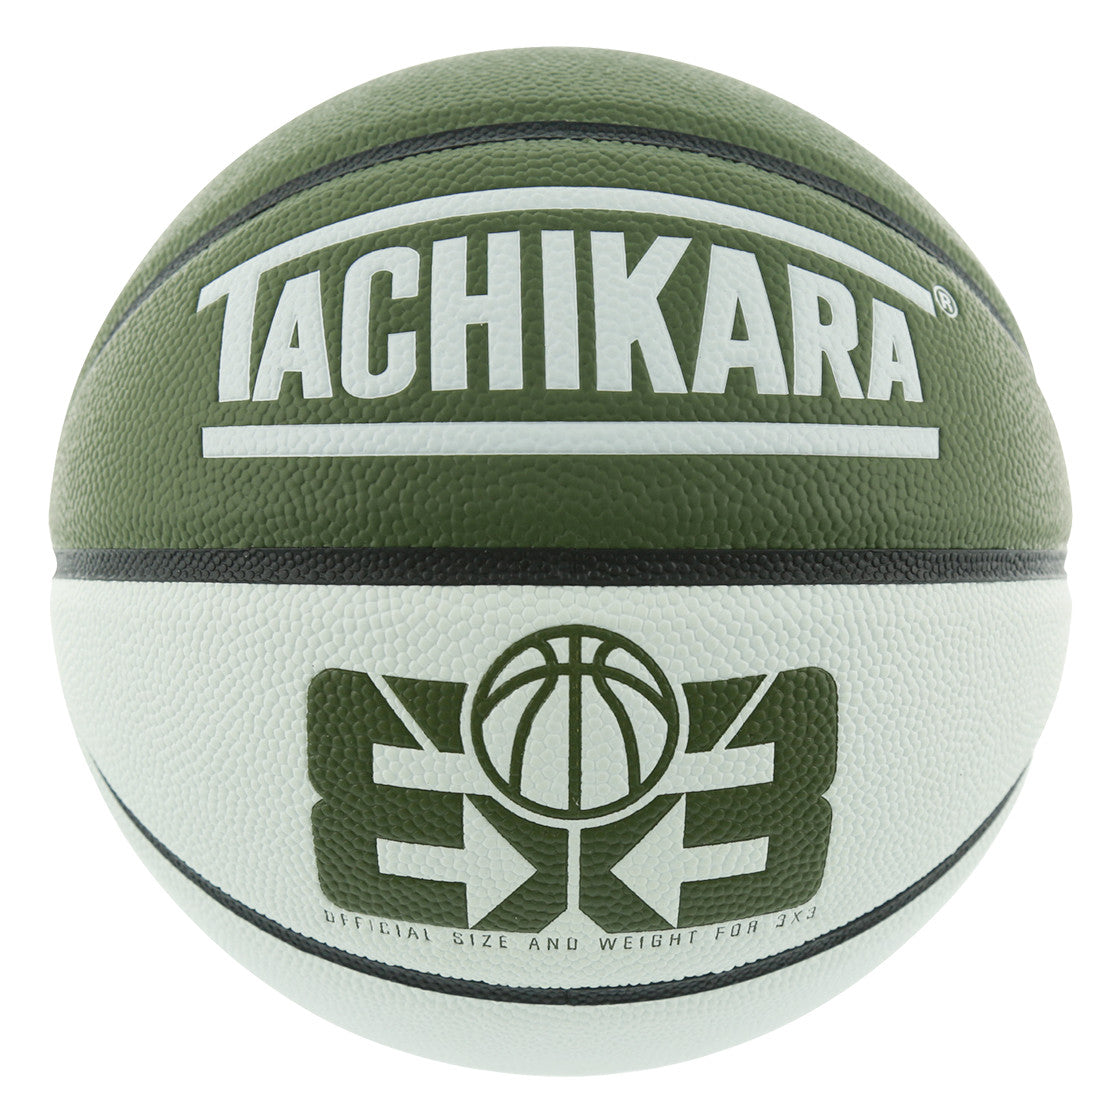 TACHIKARA 3x3 GAME BASKETBALL